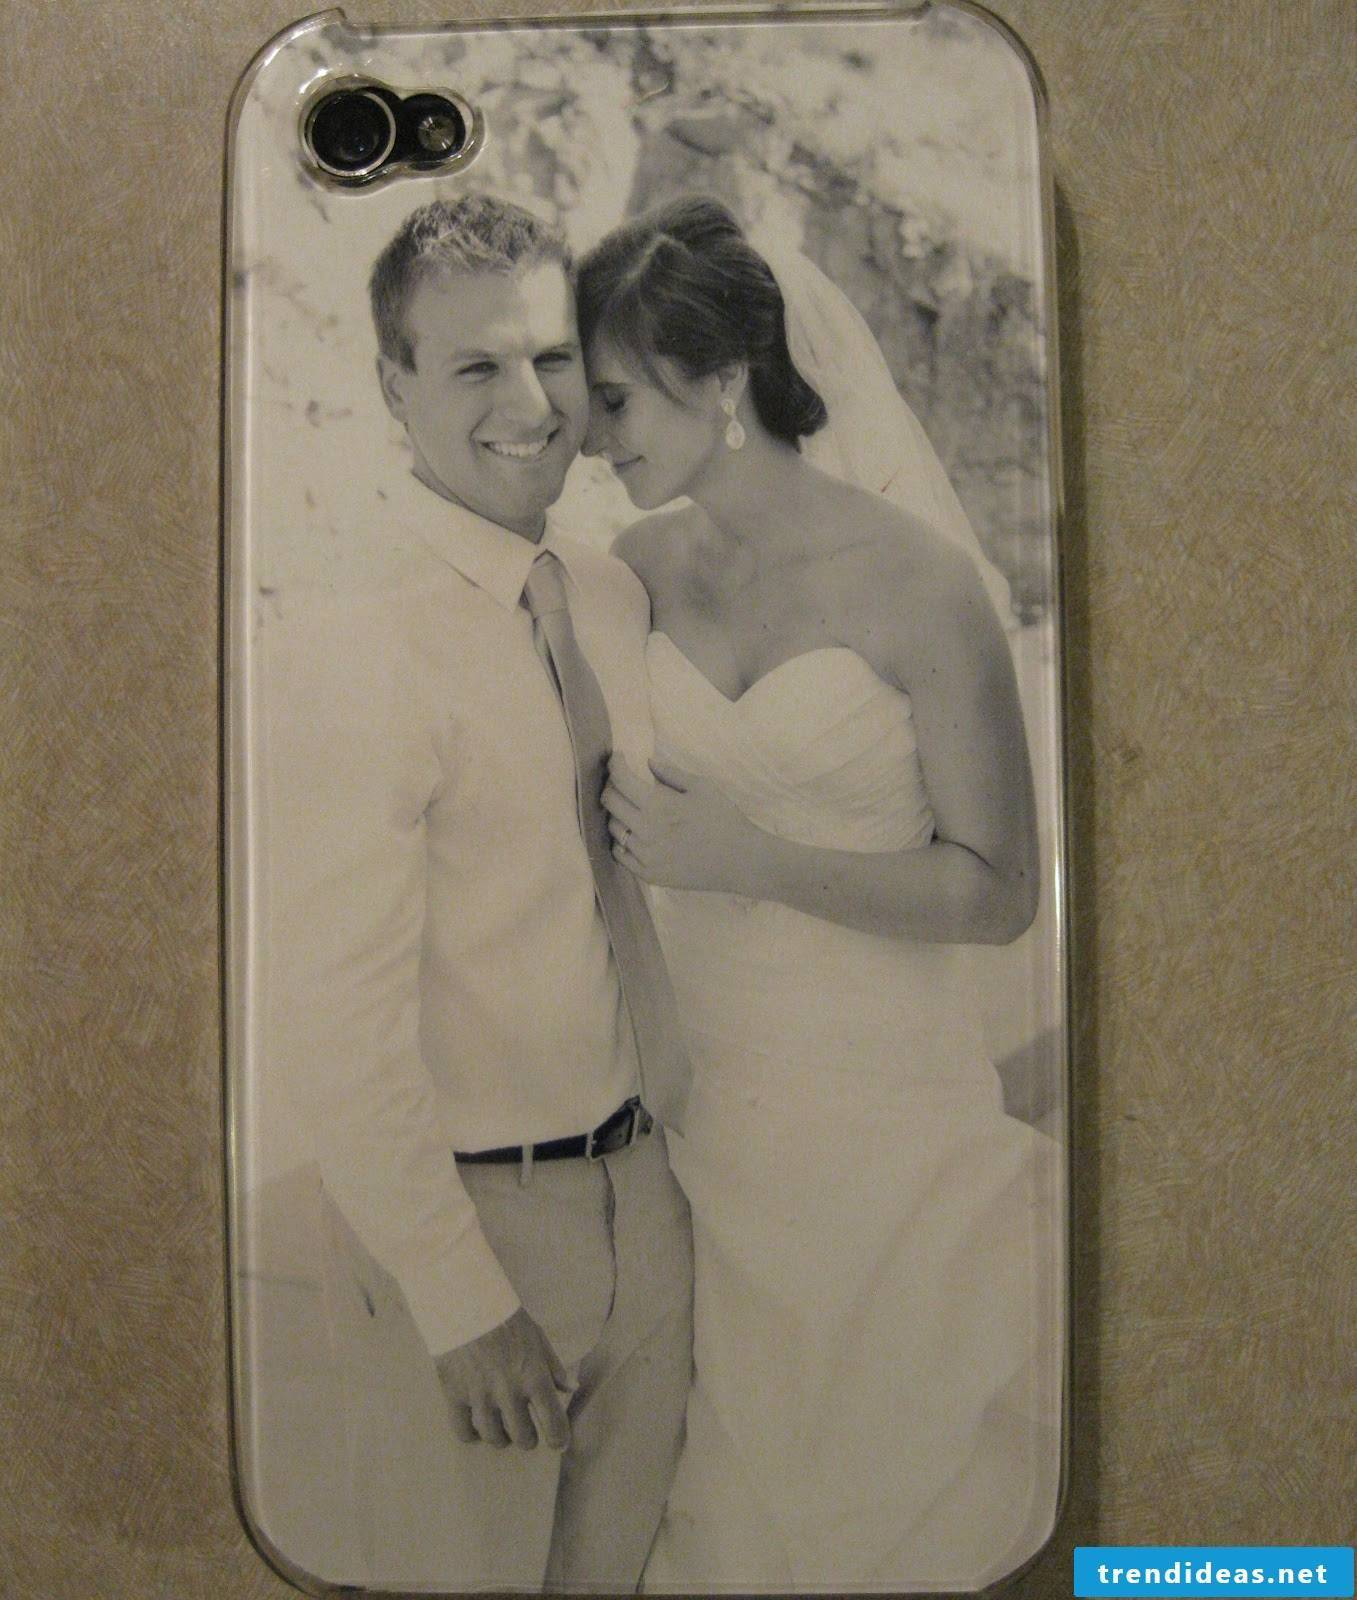 Make your own DIY phone sleeve with a photo: Carry a beautiful memory in your pocket every day